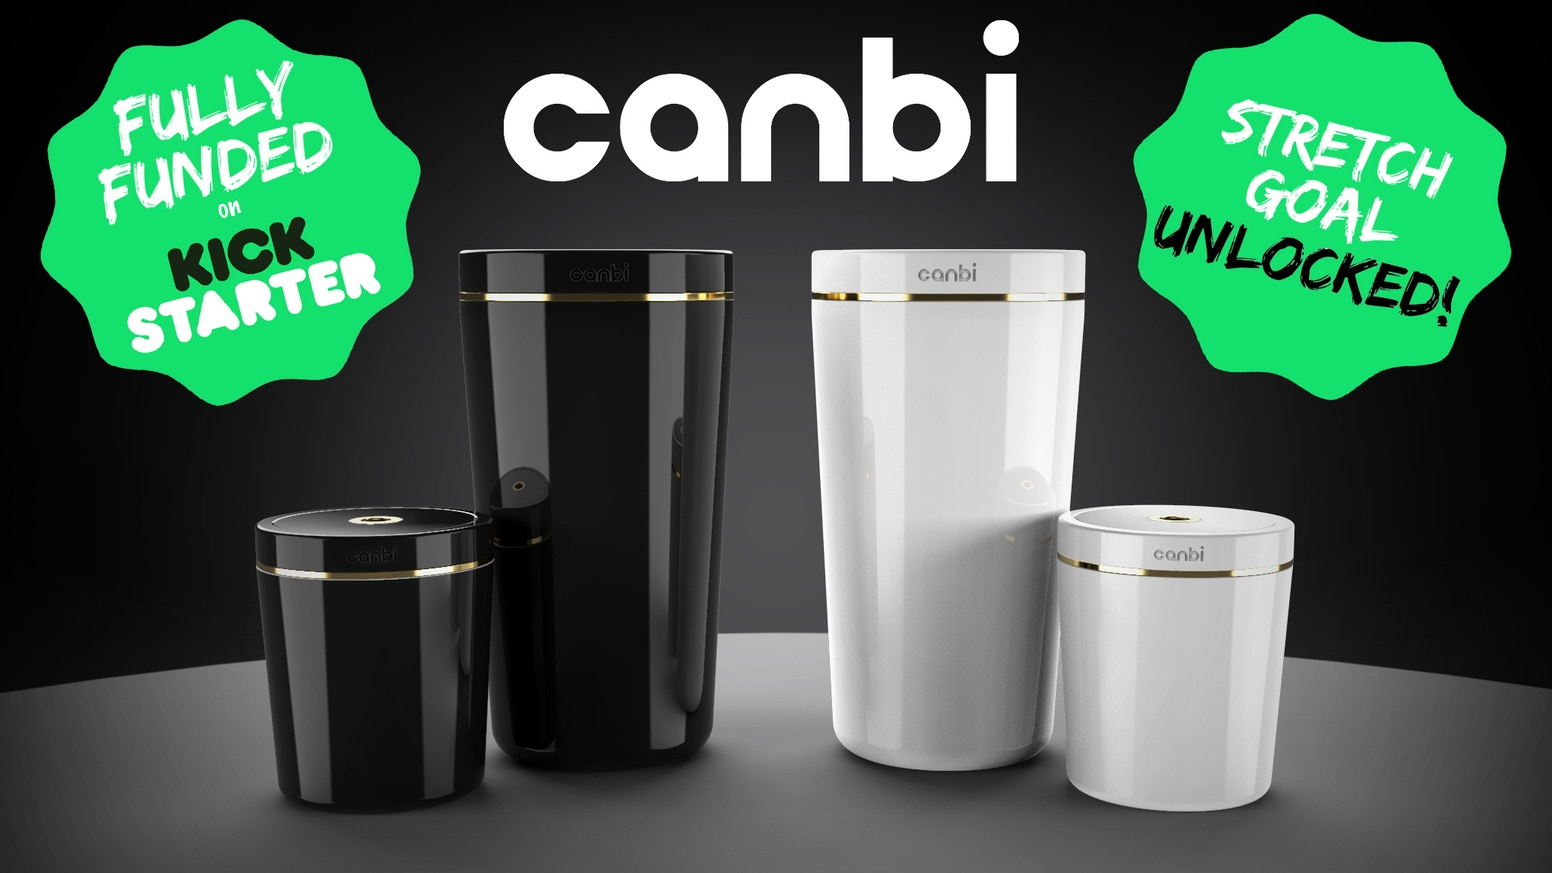 Canbi is an Eco-Friendly garbage can, designed with innovative features and a strong emphasis on reducing plastic pollution.